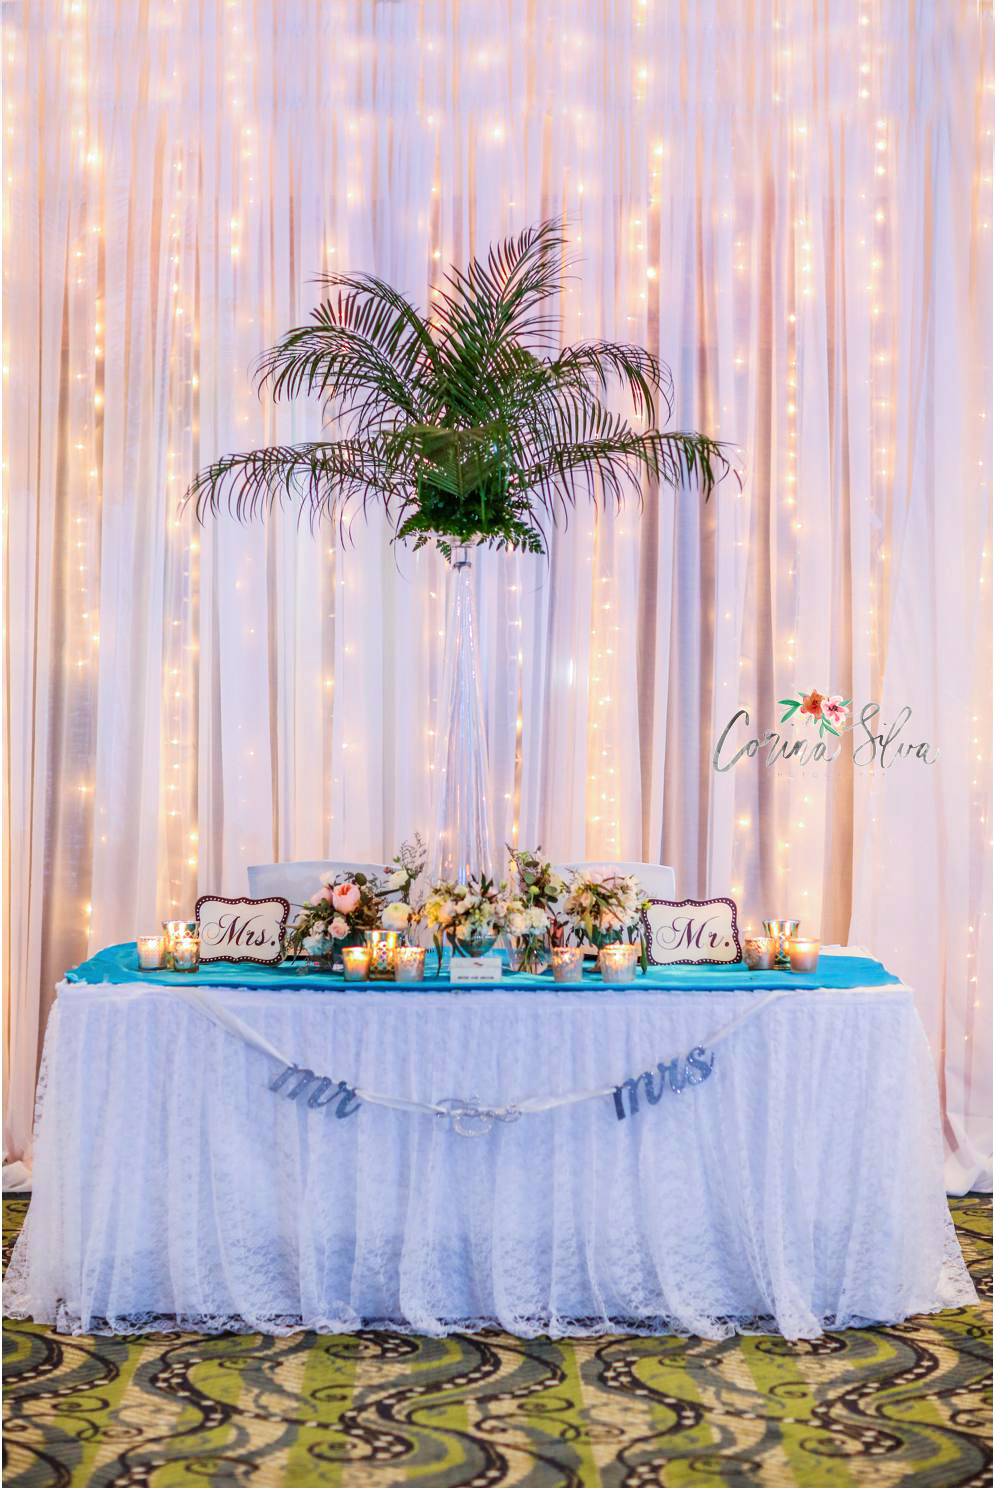 White-blue-hidrangeas-orchids-wedding-decorations, Corina-Silva-Decor-Photography-8.jpg